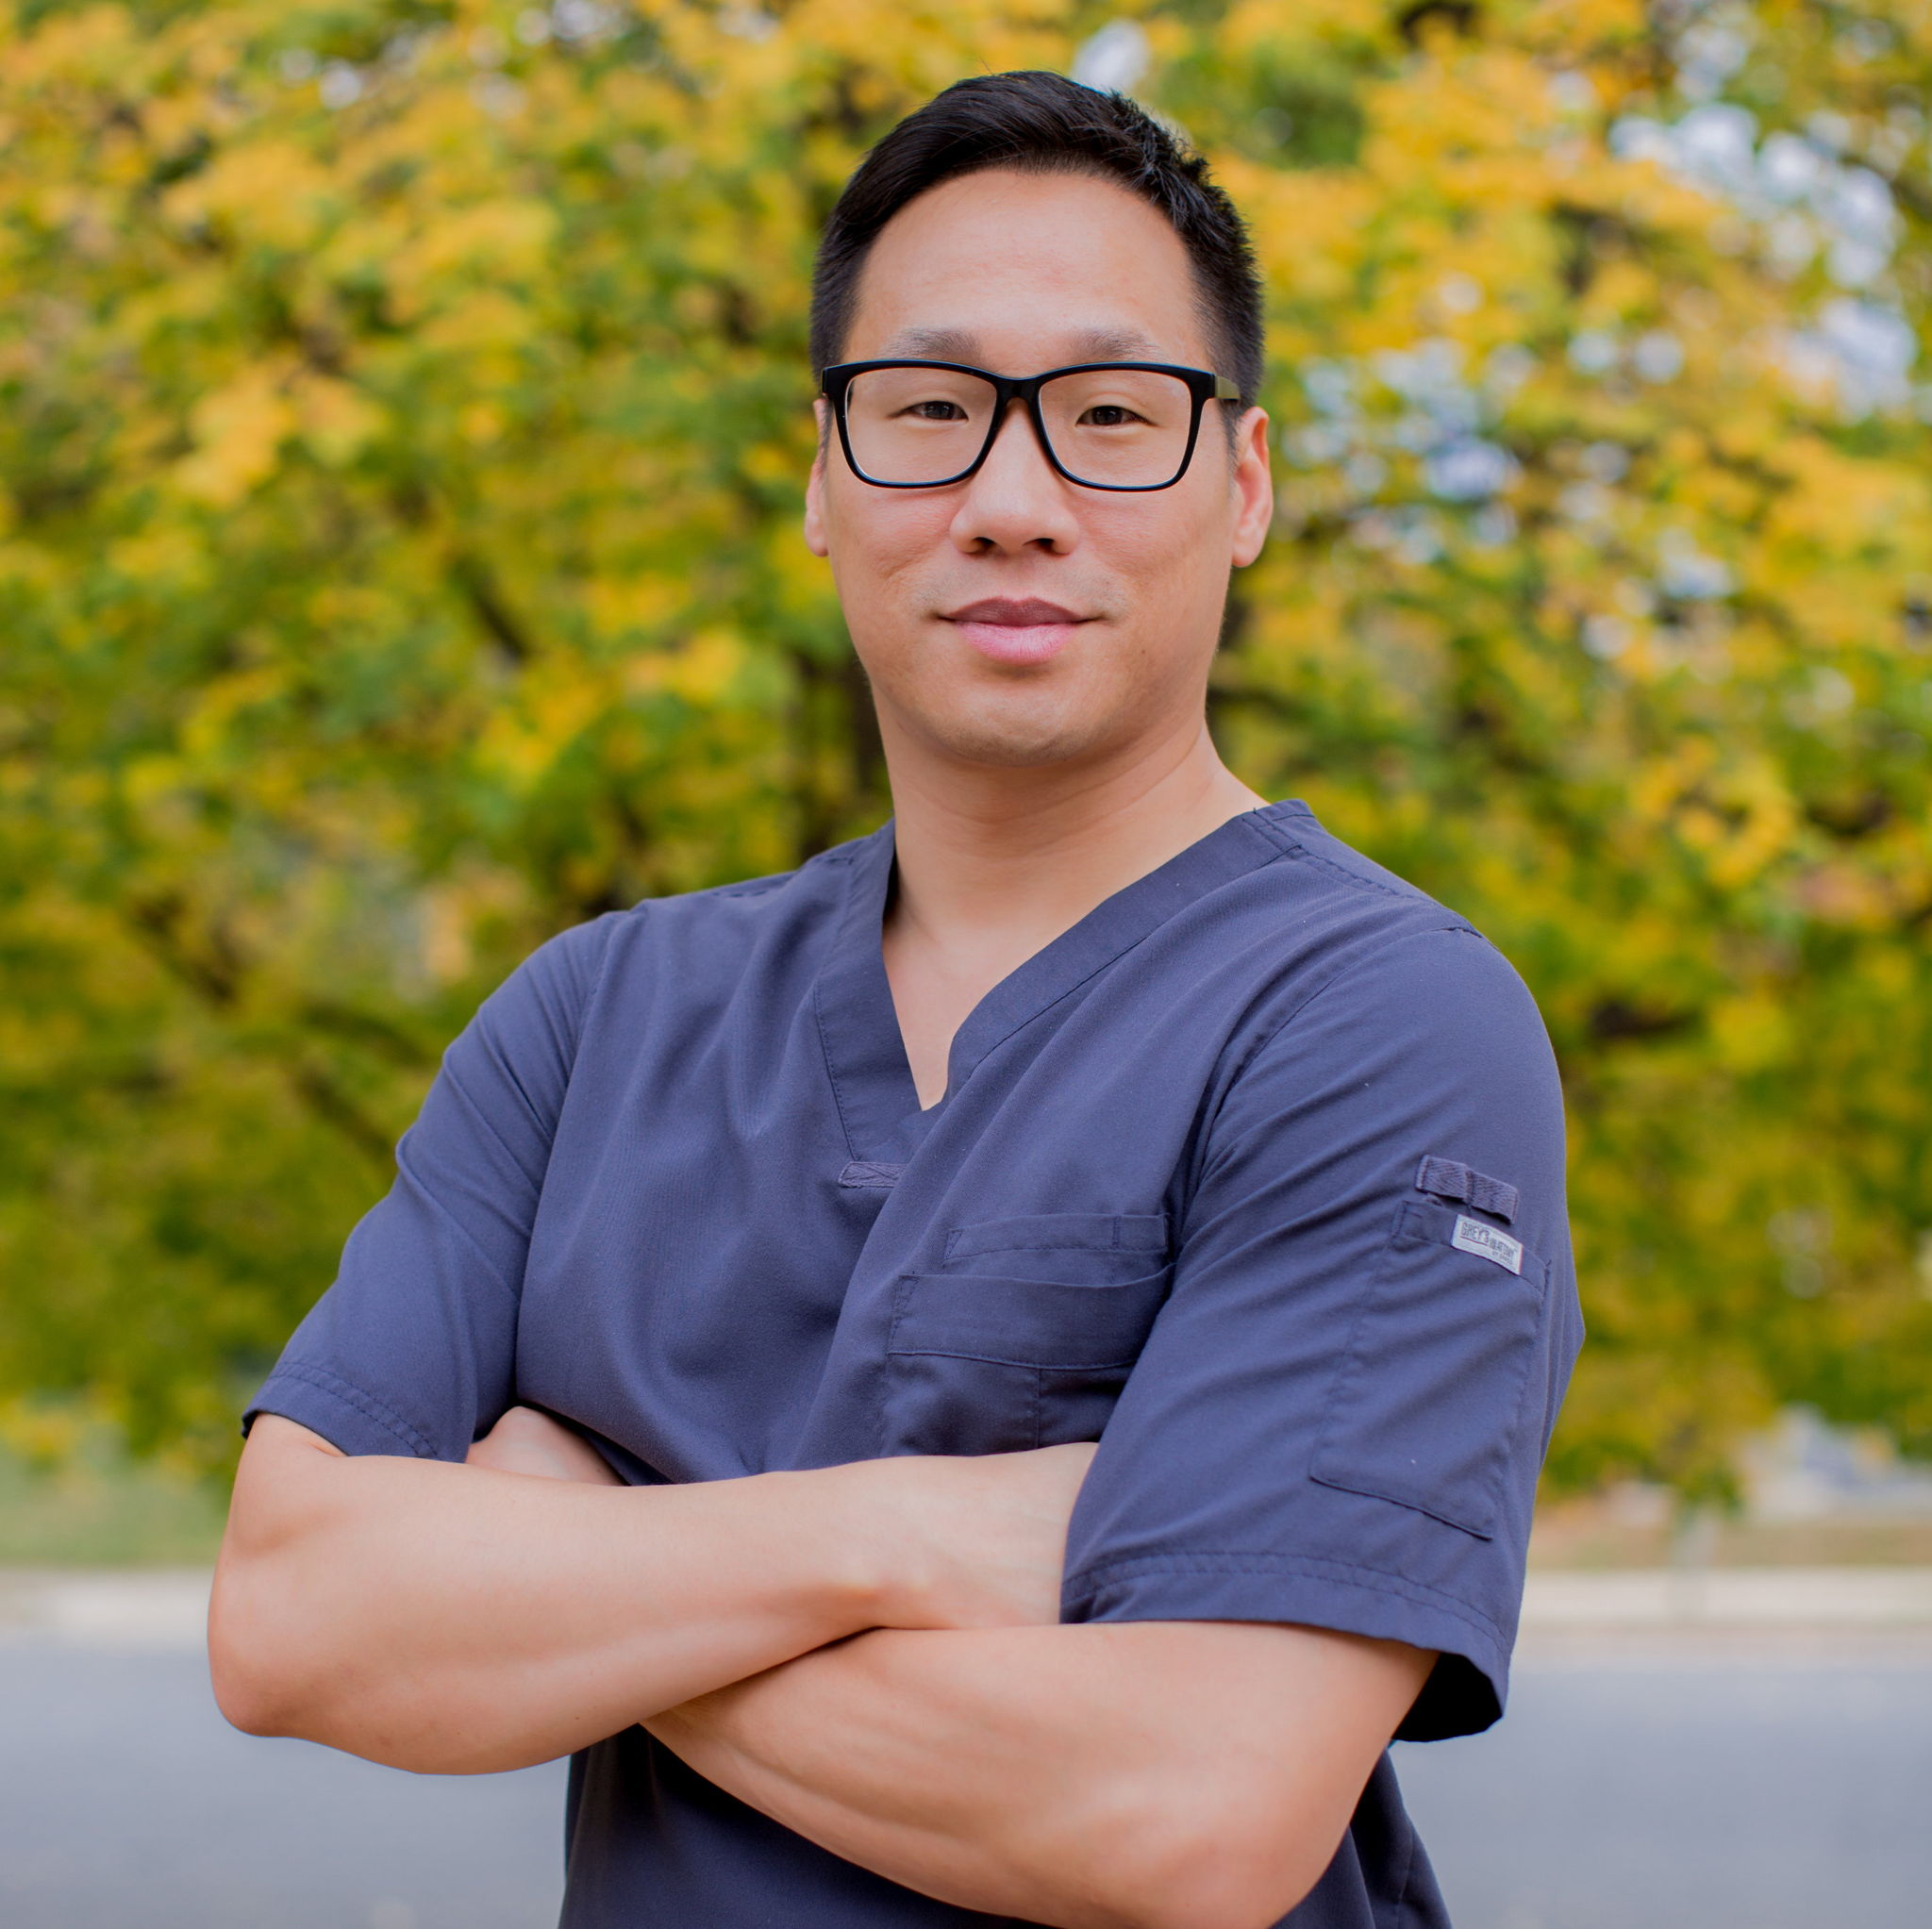 Dr. Gregory K. Lee D.C., Chiropractor